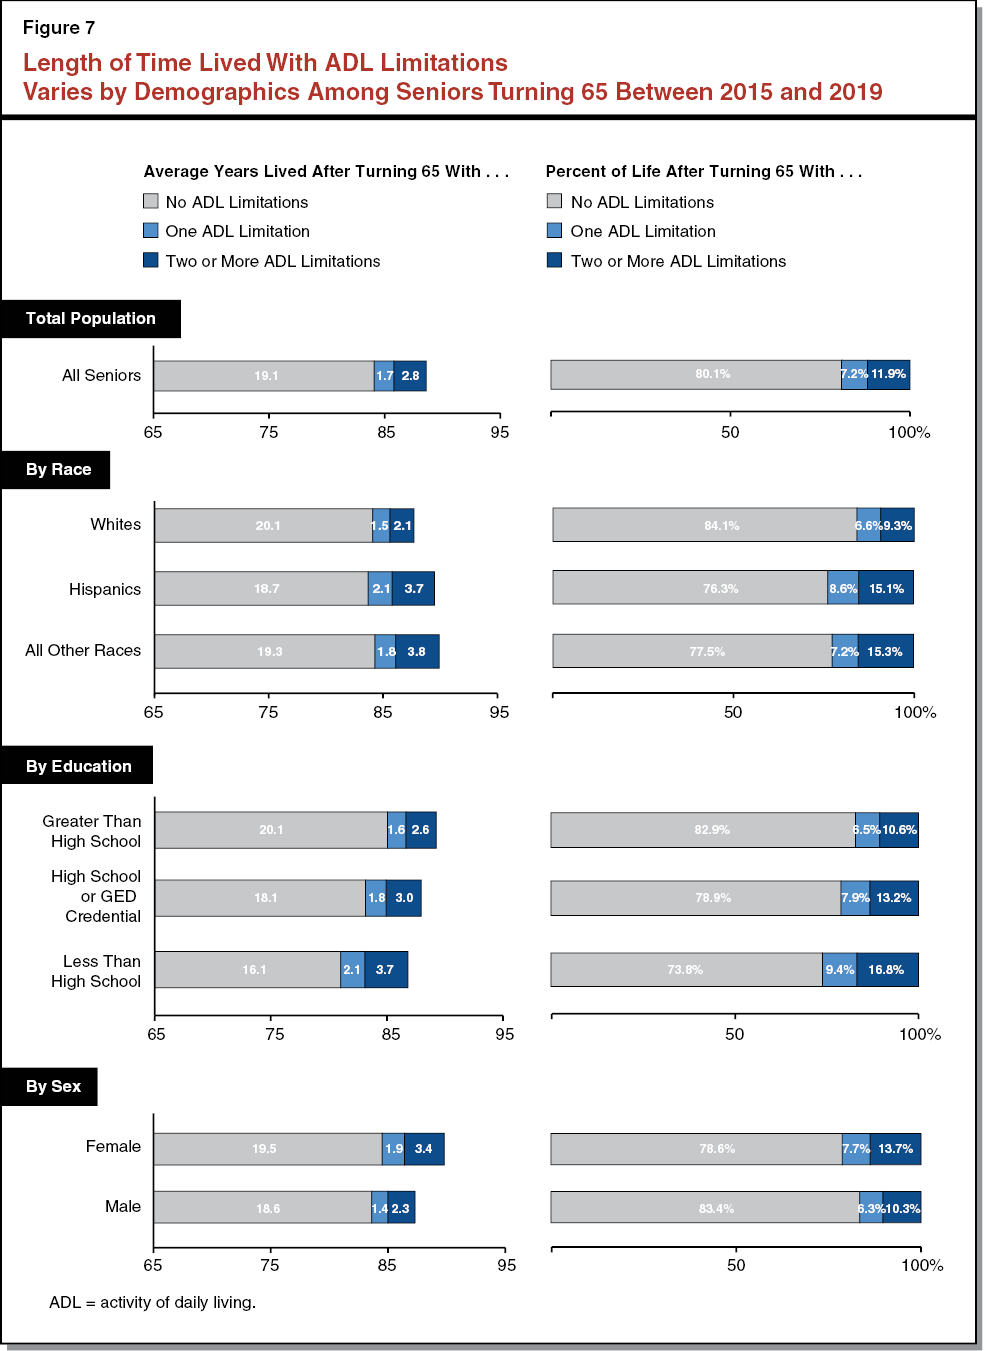 Figure 7 - Length of Time Lived with ADL Limitations Varies By Demographics Among Seniors Turning 65 in 2015 and 2019